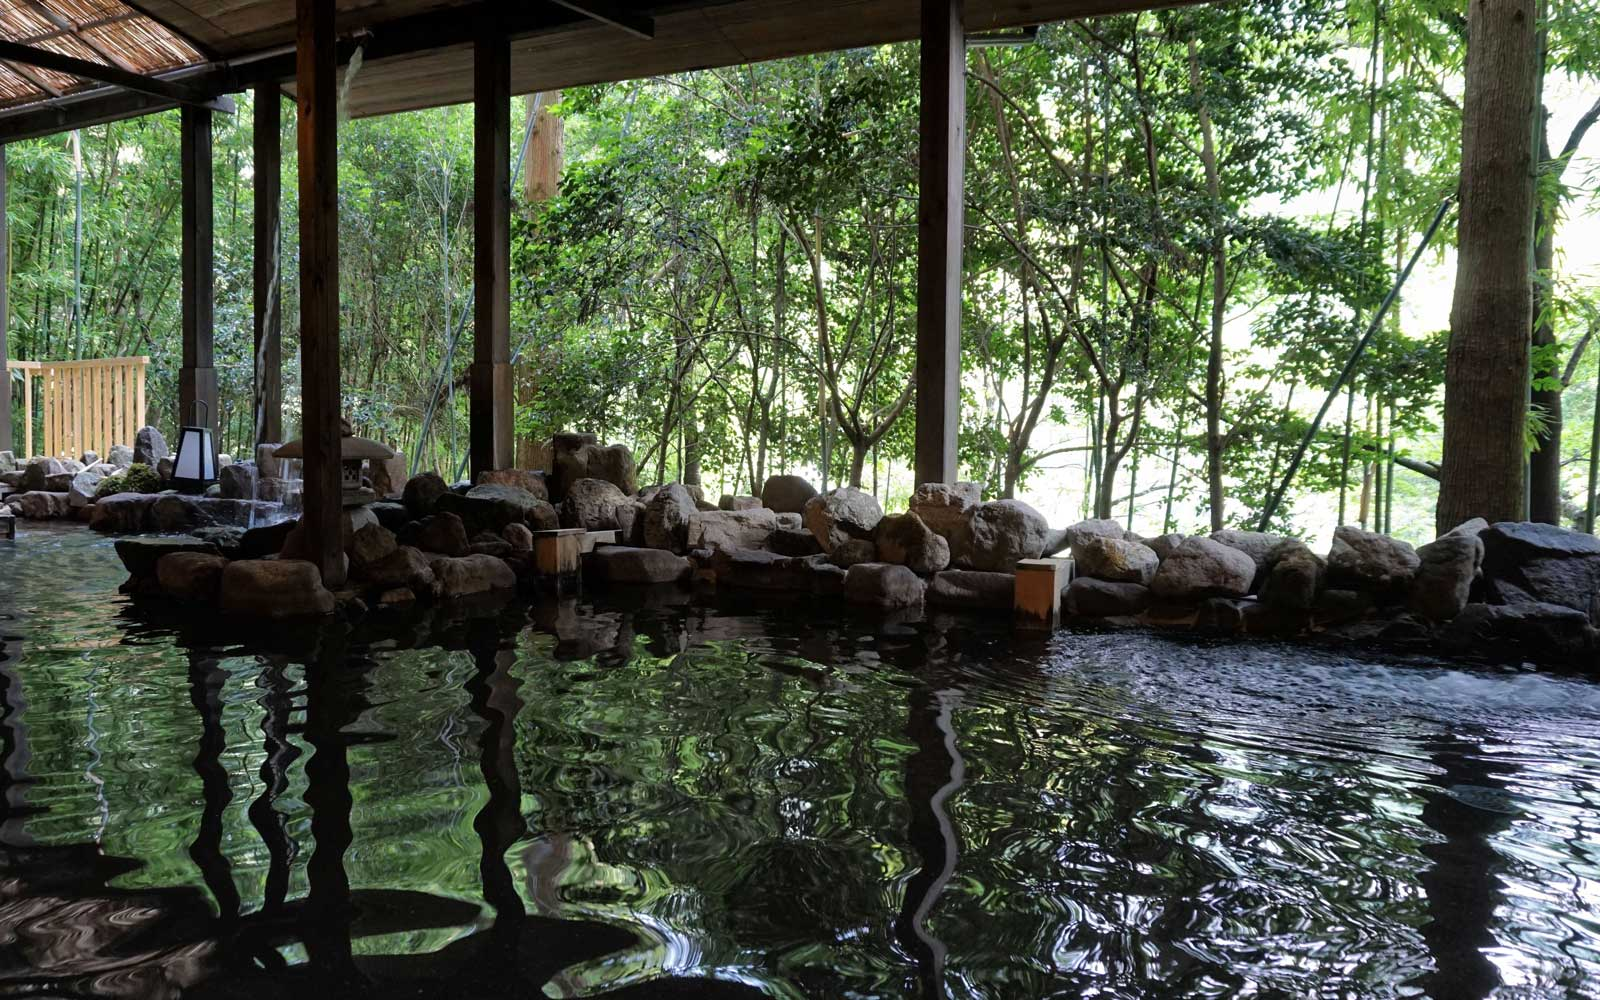 You Can Take a Bath in Craft Beer at This Resort in Japan